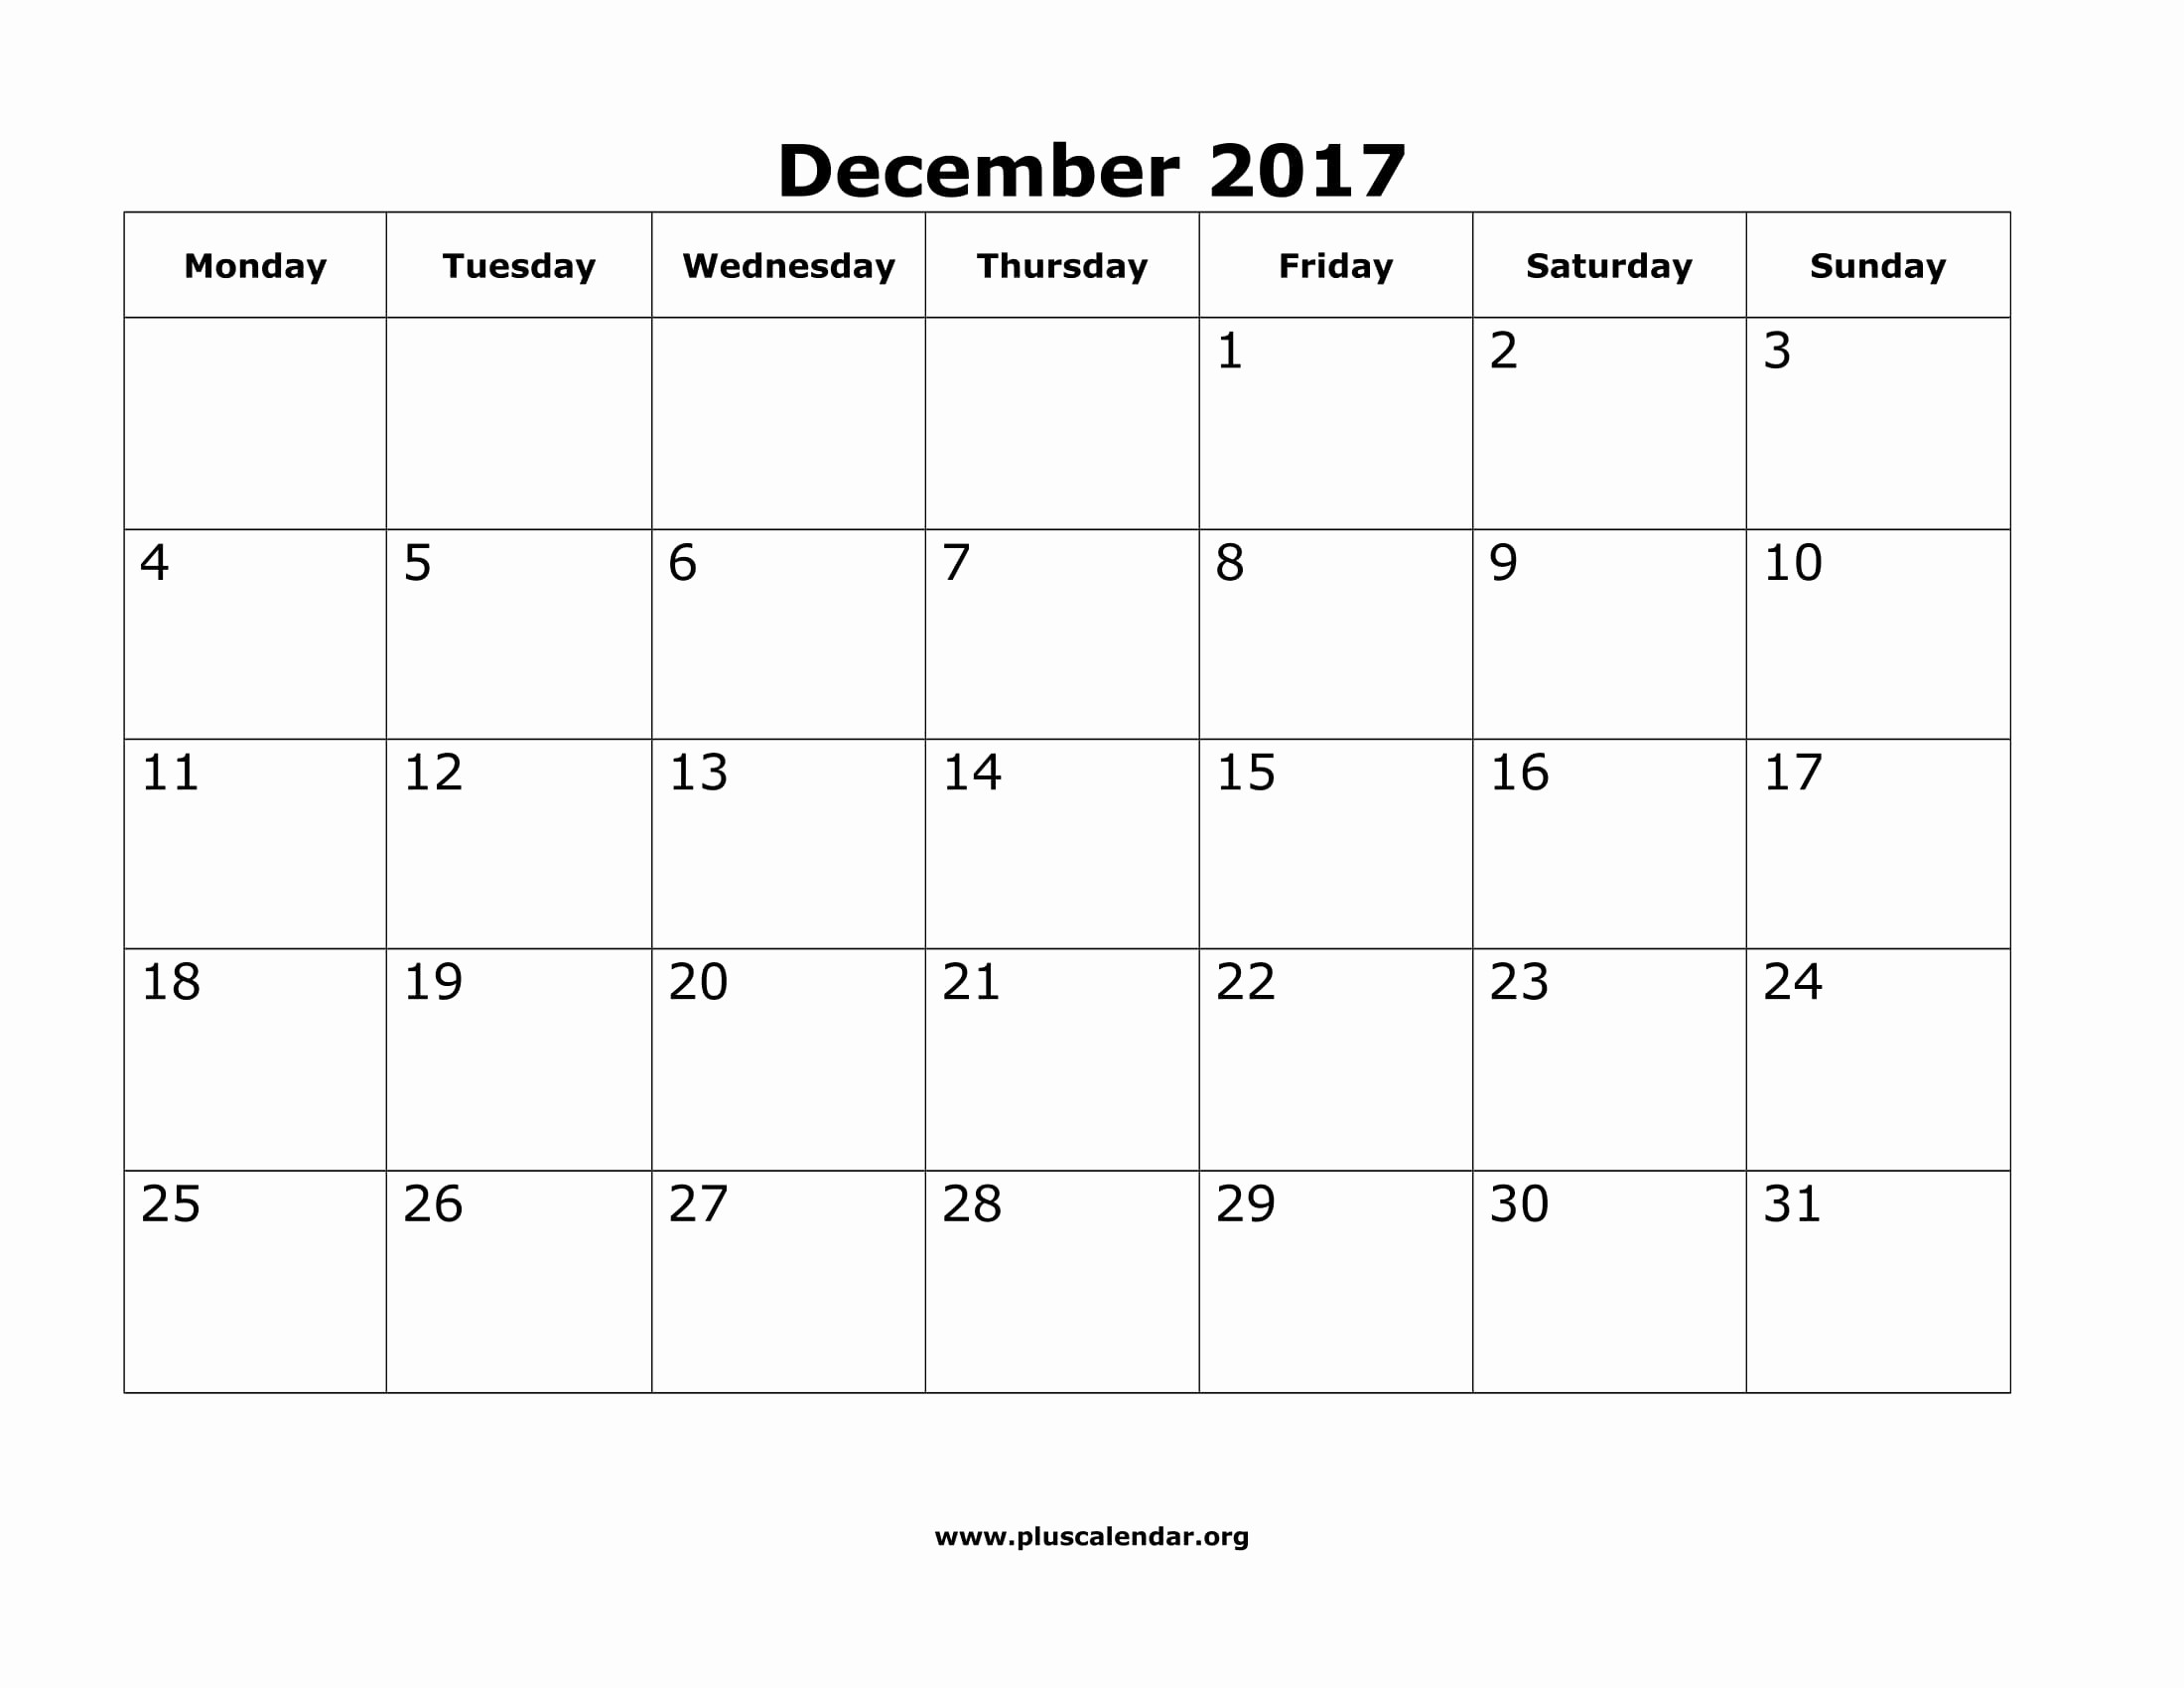 Monday to Sunday Calendar 2017 New December 2017 Calendar Monday Sunday